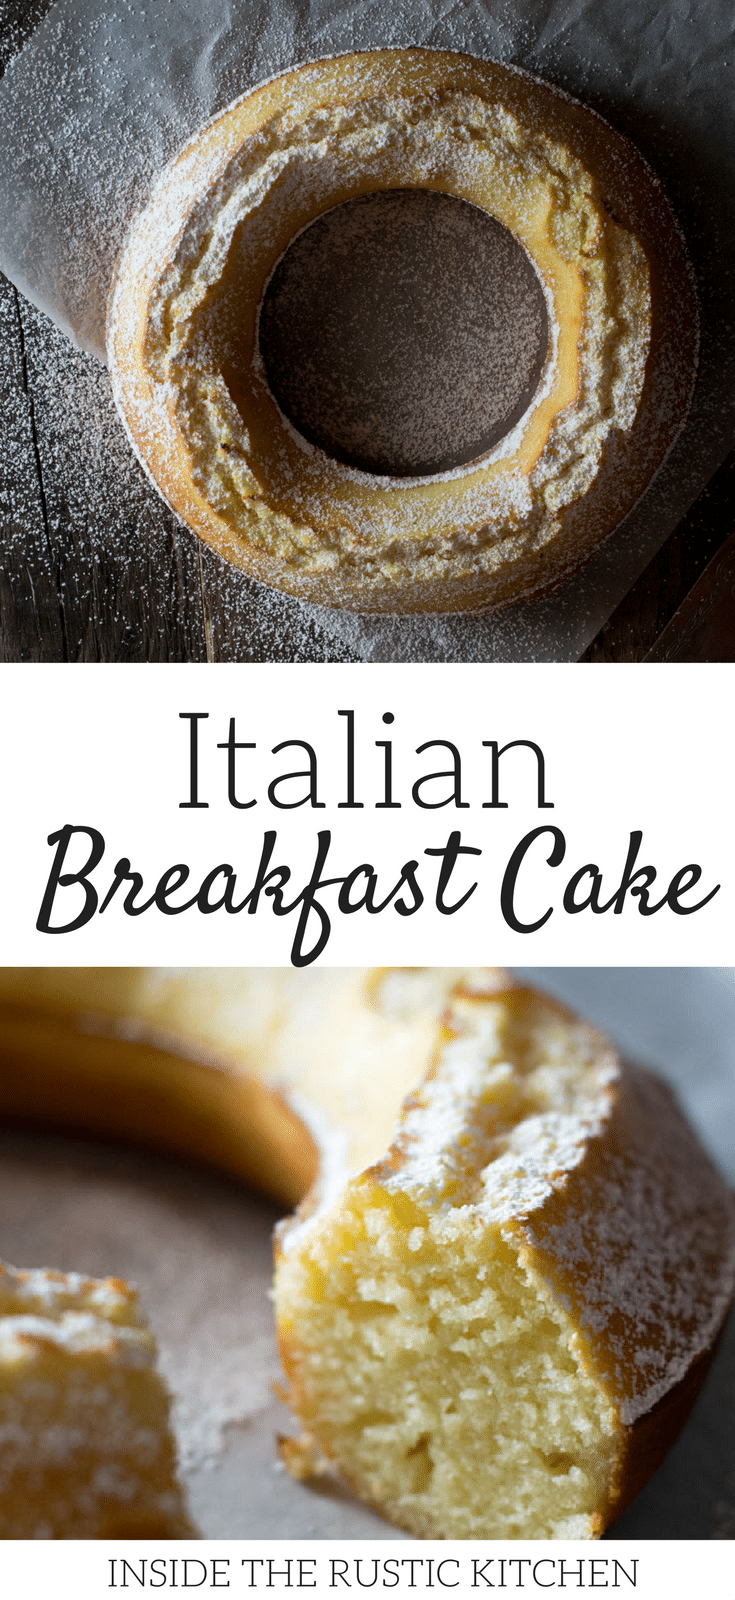 An Italian breakfast cake recipe - Italian ciambella recipe made with flour, eggs, sugar, lemon zest and yogurt. Made in under 30 minutes. An easy authentic Italian breakfast recipe. For more authentic Italian recipes visit Insidetherustickitchen.com